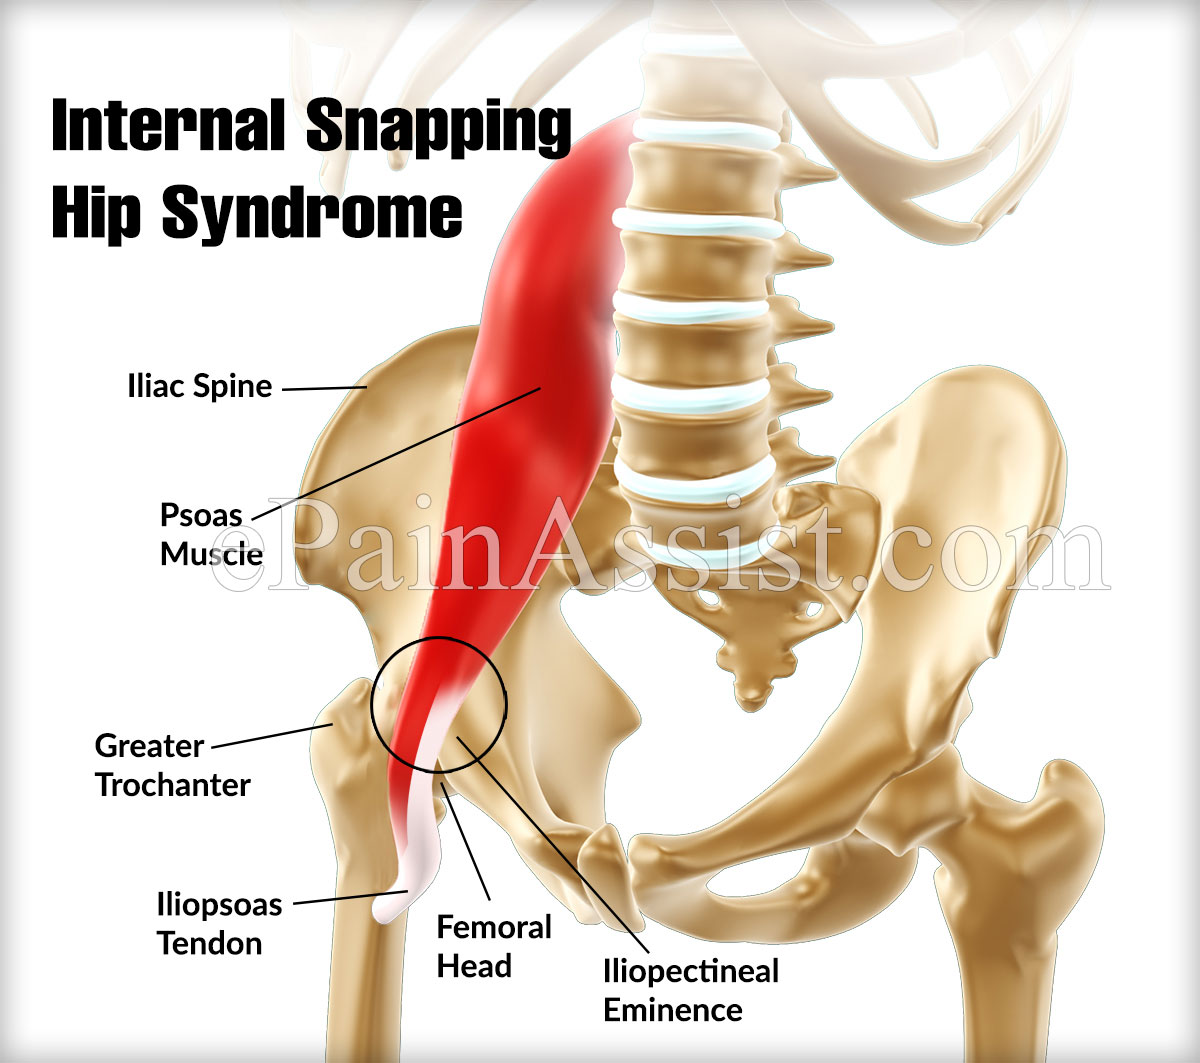 Internal Snapping